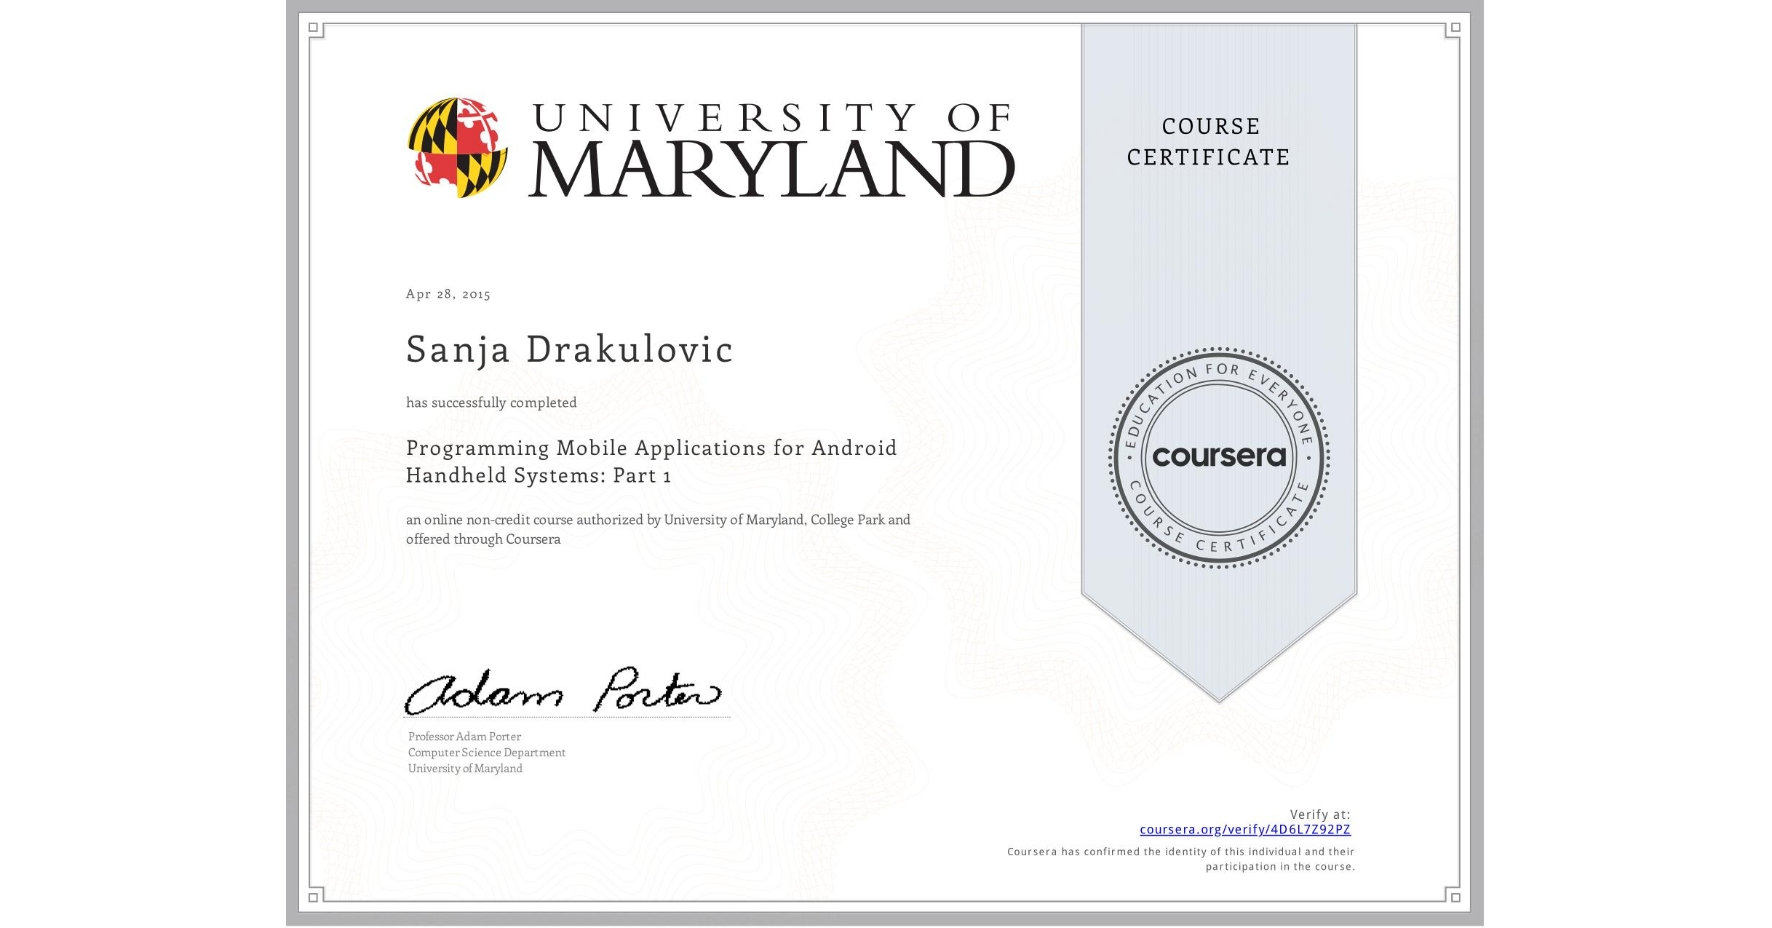 View certificate for Sanja Drakulovic, Programming Mobile Applications for Android Handheld Systems: Part 1, an online non-credit course authorized by University of Maryland, College Park and offered through Coursera